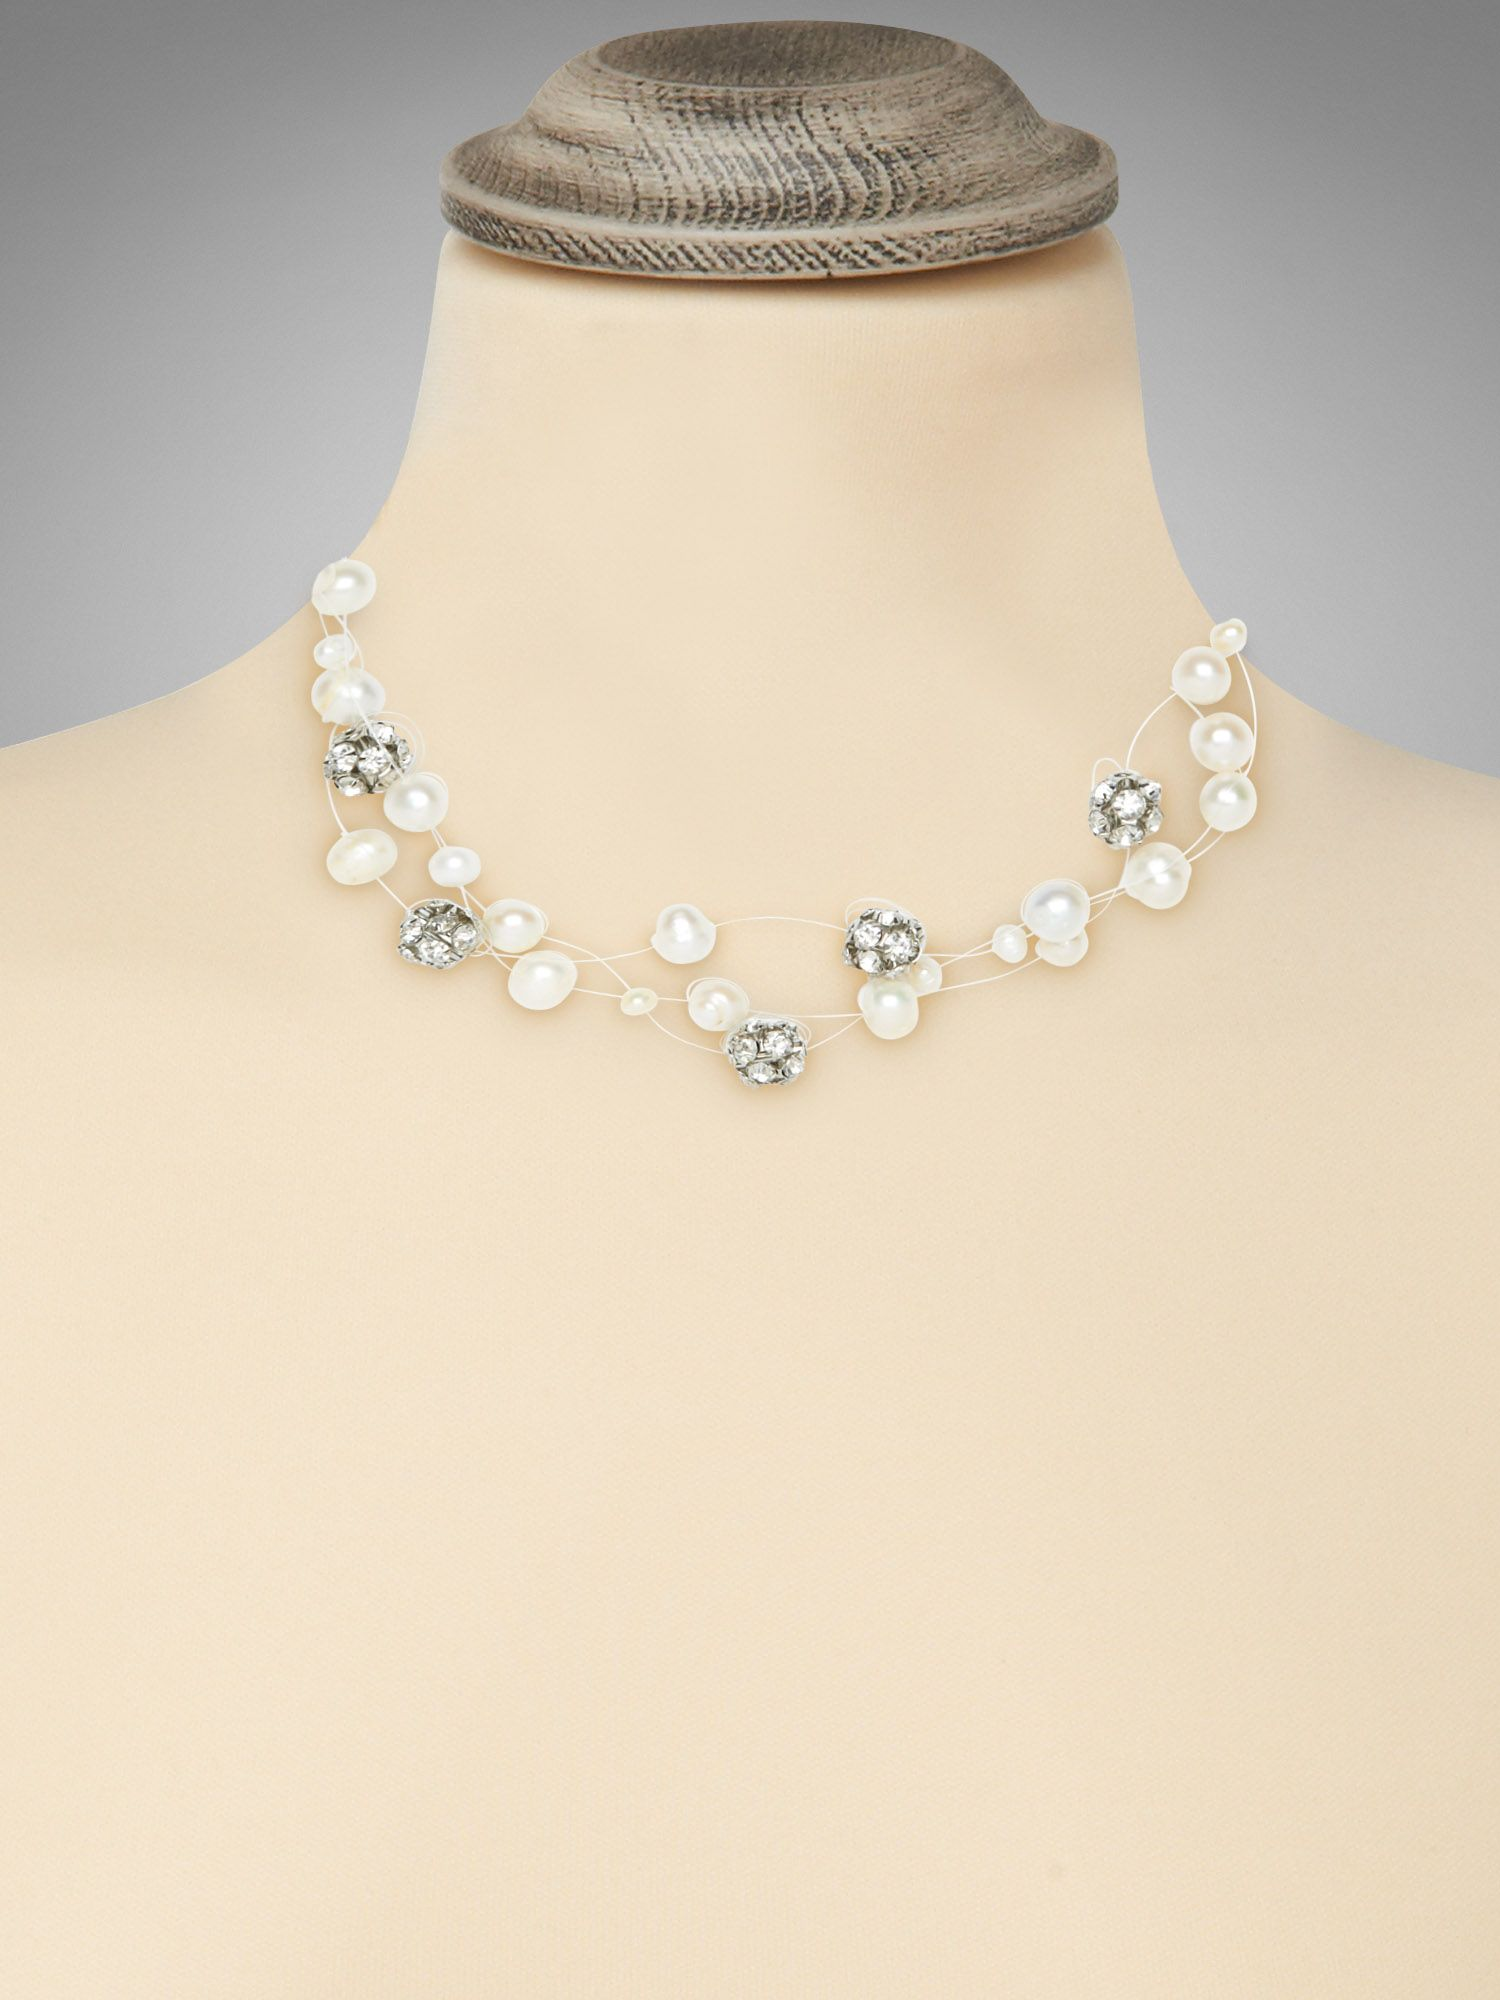 Illusion pearl necklace